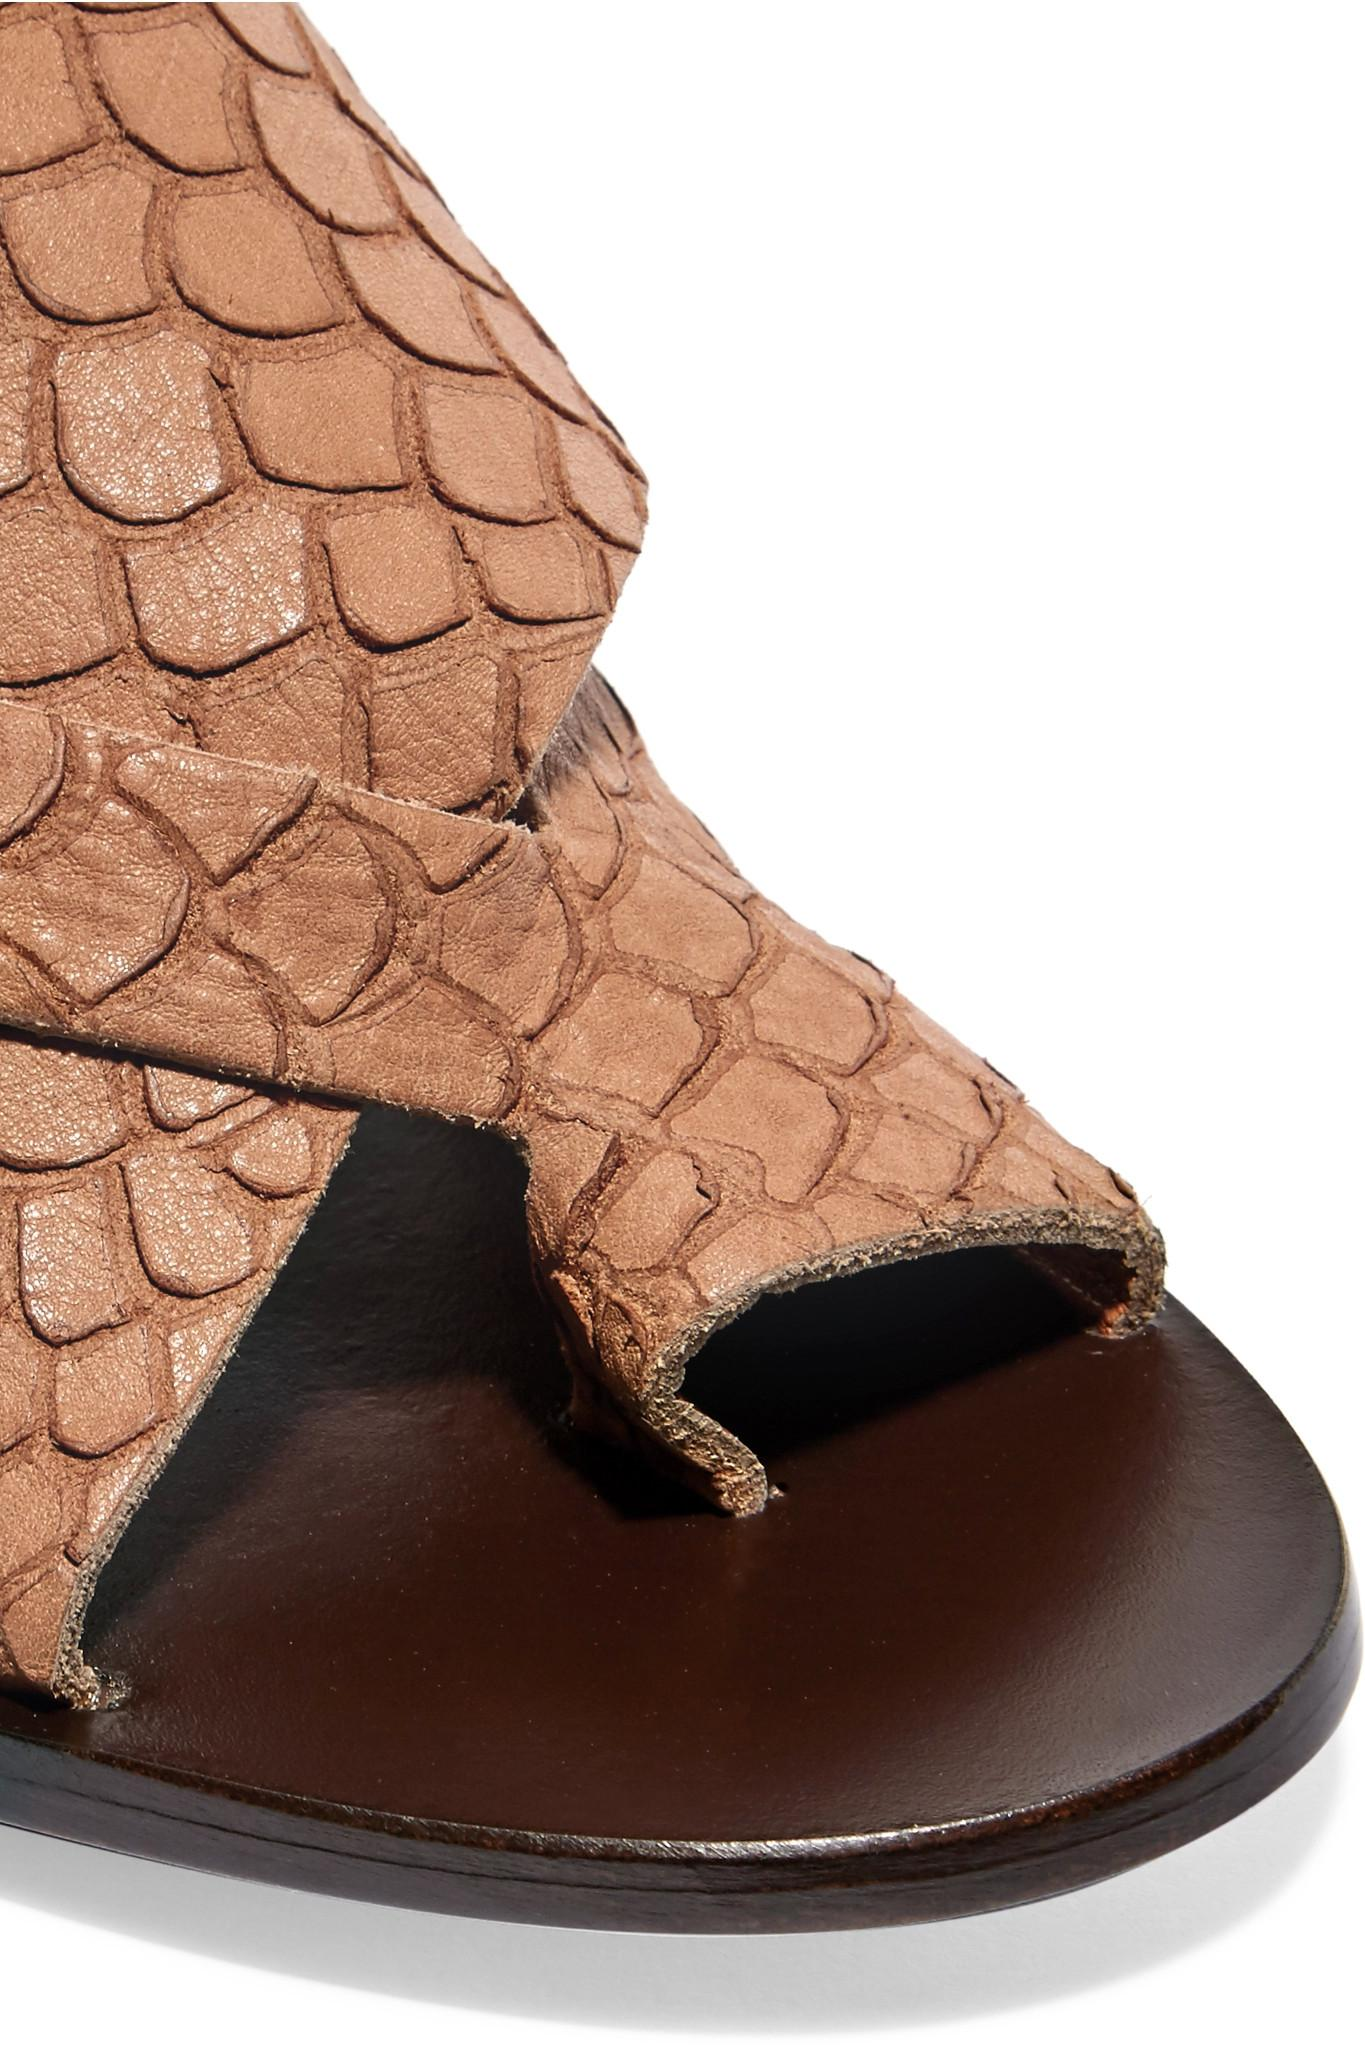 365212d2356e53 Lyst - Atp Atelier Felicia Snake-effect Leather Sandals in Brown